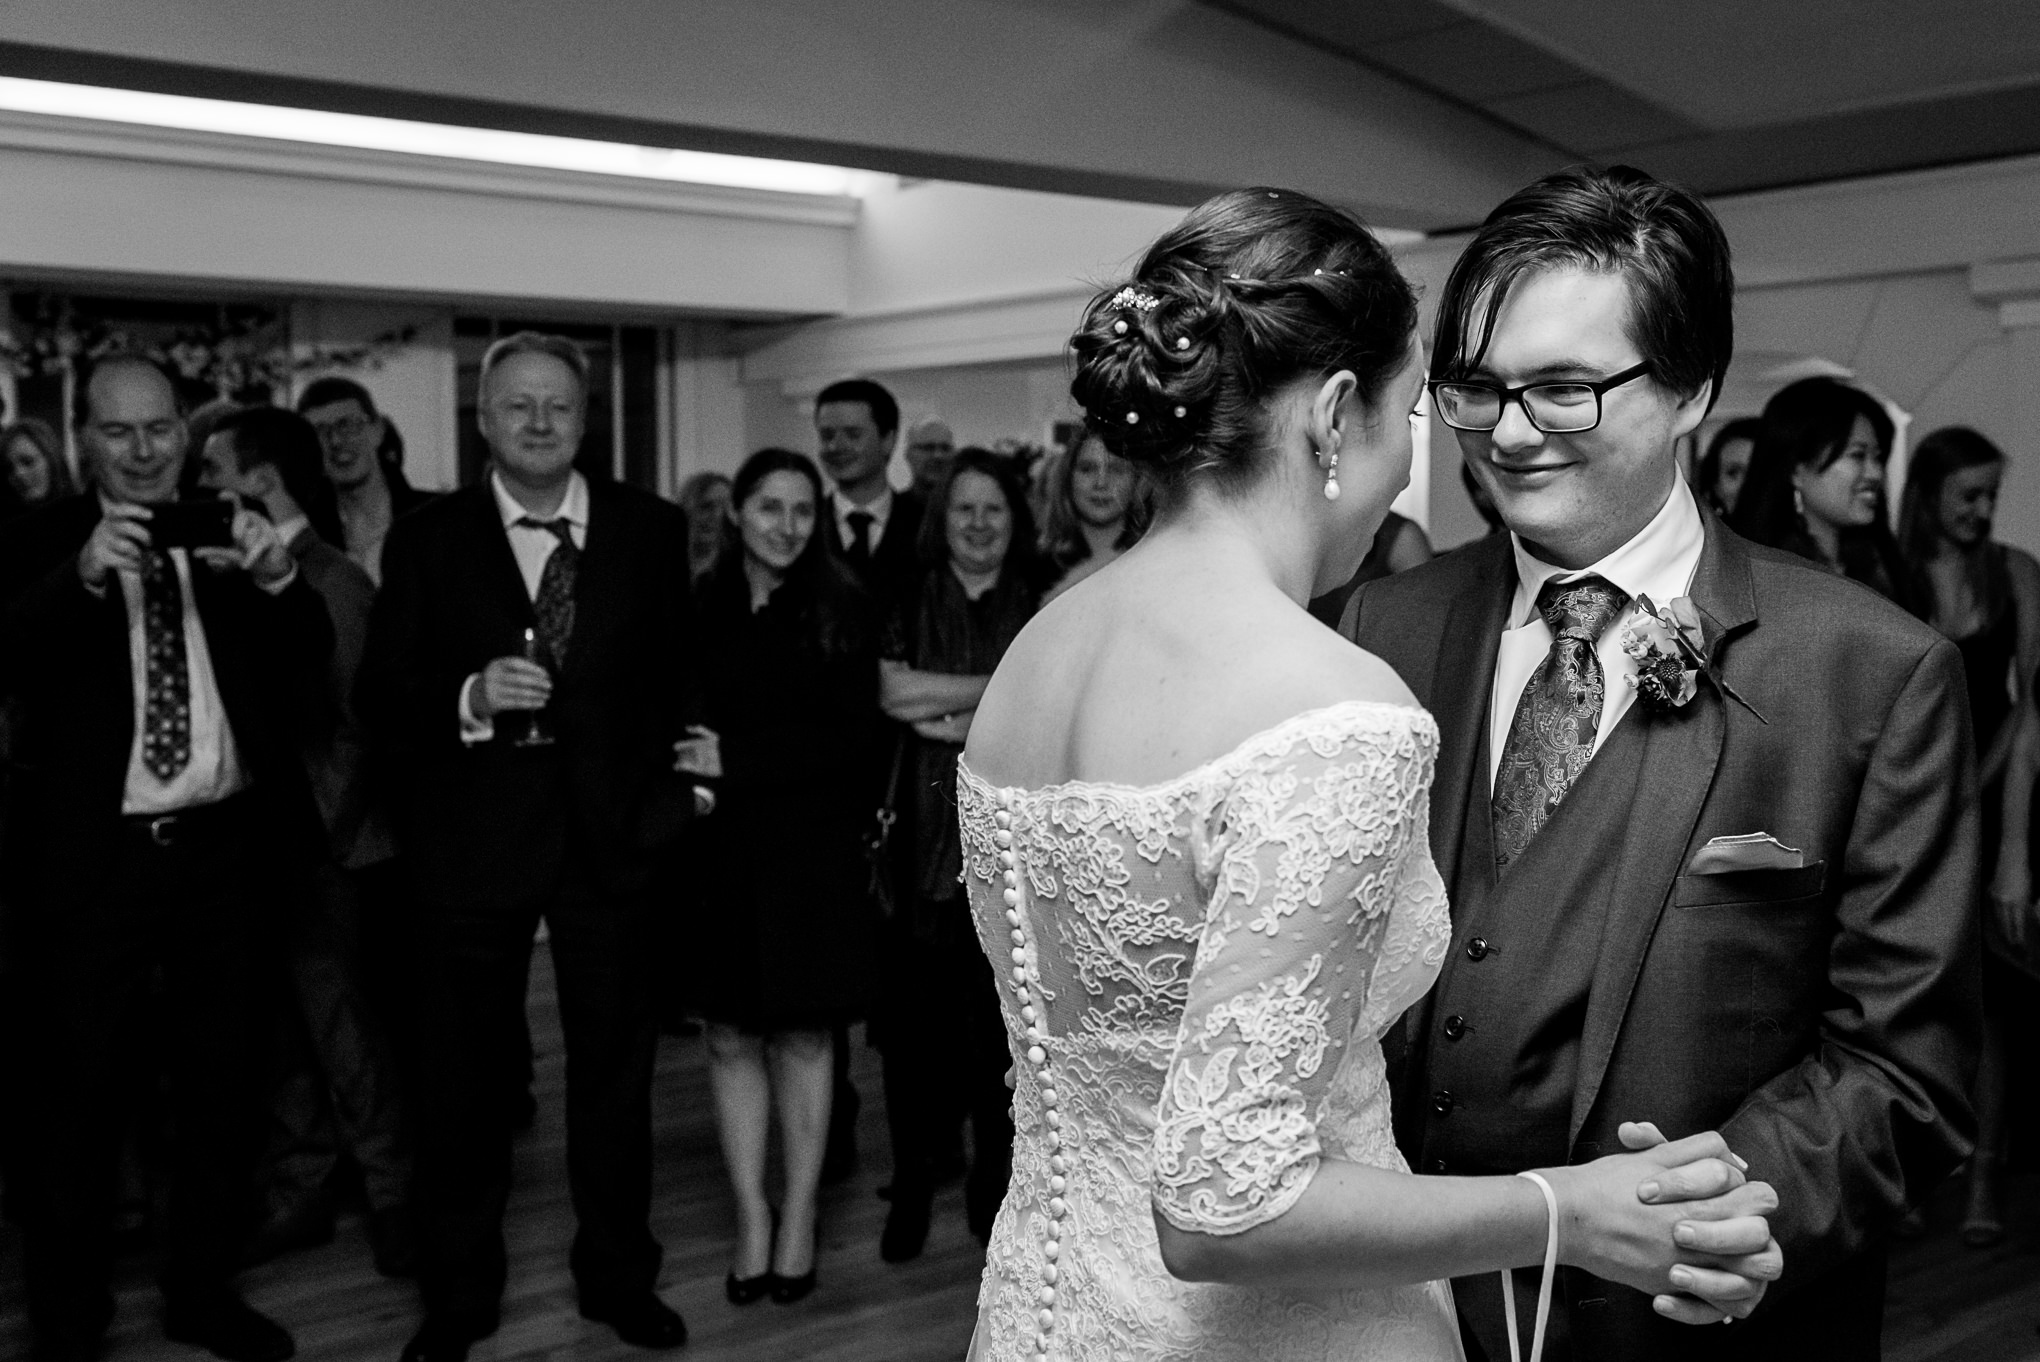 carine bea photography, london wedding photography, london wedding photographer, documentary wedding photographer, pembroke lodge wedding, richmond wedding photographer, richmond wedding photography, richmond wedding venue, winter wedding photos, winter wedding photographer